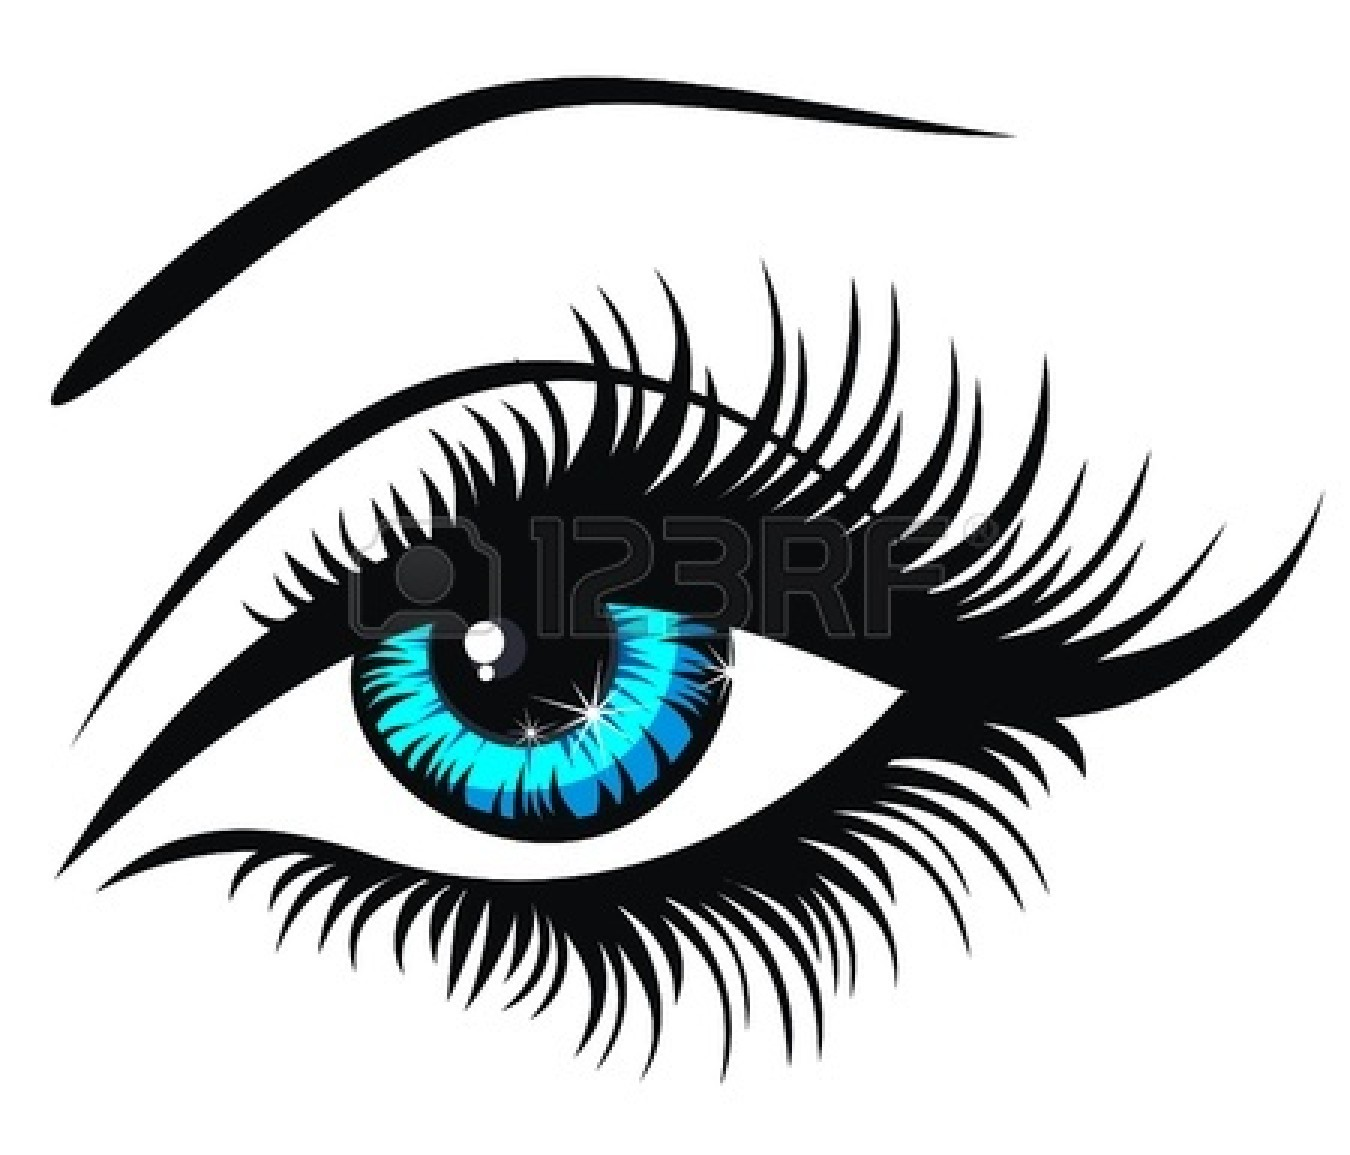 1350x1155 eyes black and white black eye clipart 3